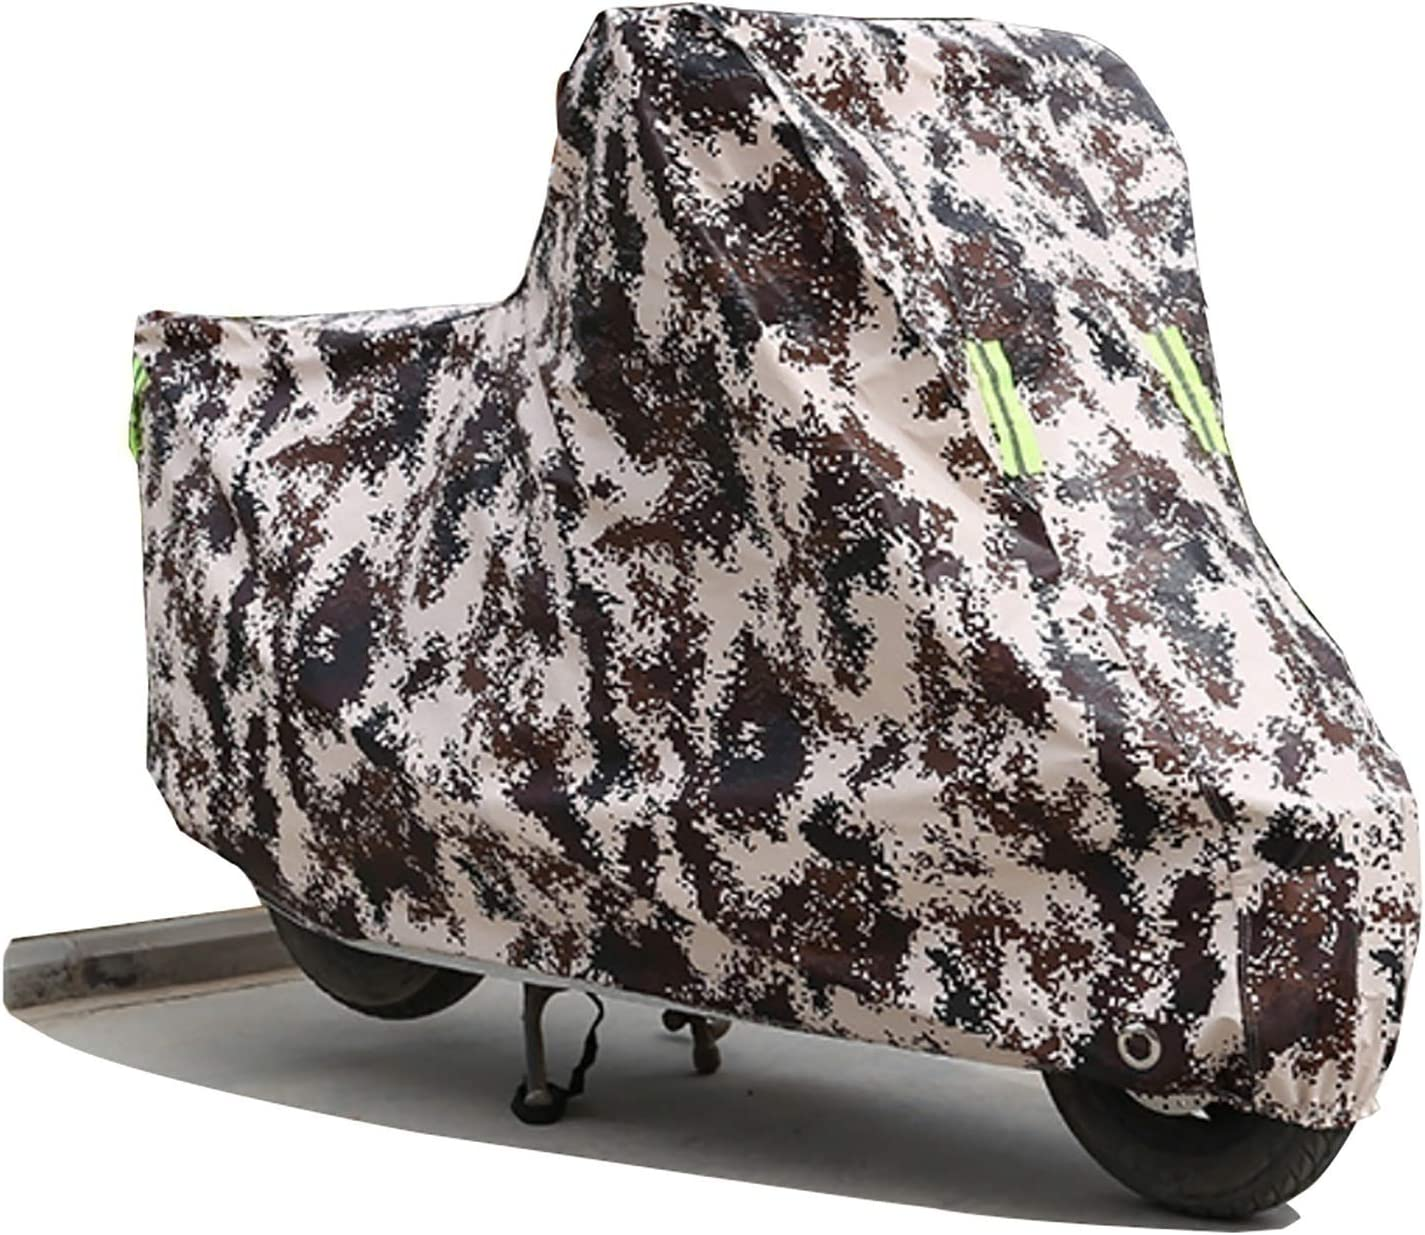 HEQCG Motorcycle Cover Compatible Recommendation Limited time cheap sale with F BMW Covers 8